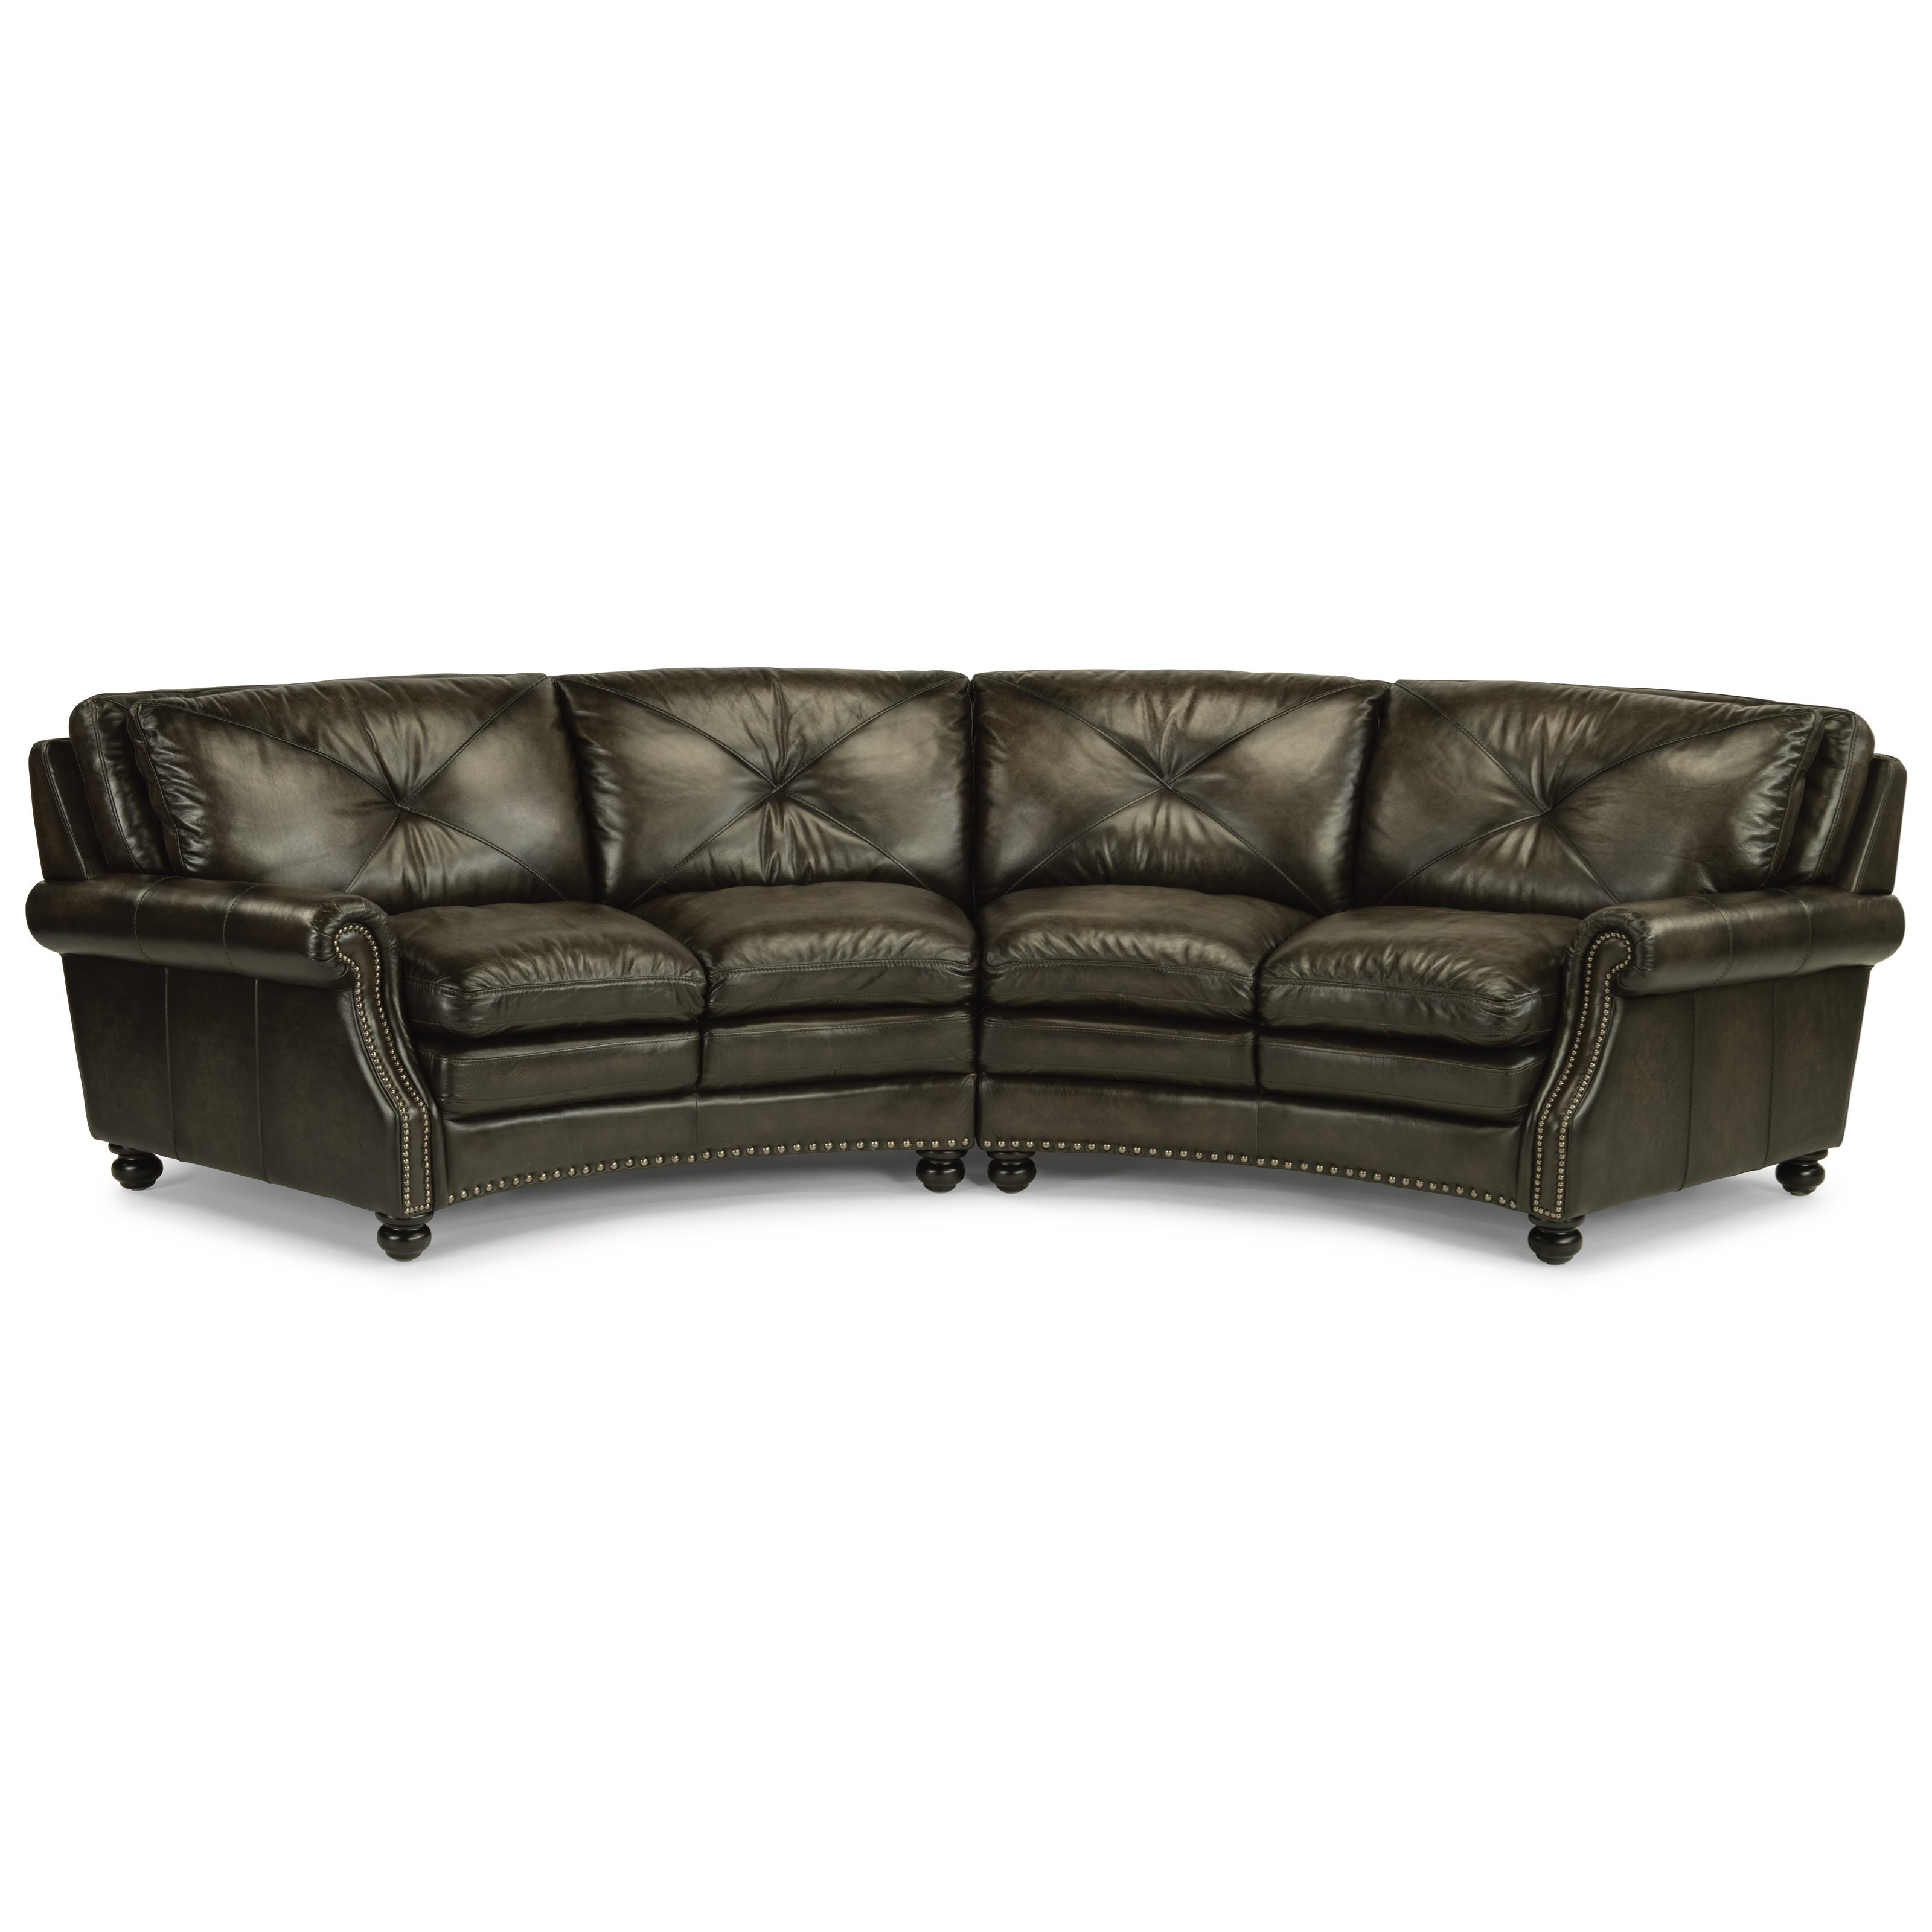 Flexsteel Sofa Locations: Flexsteel Latitudes-Suffolk Round Sectional Sofa With